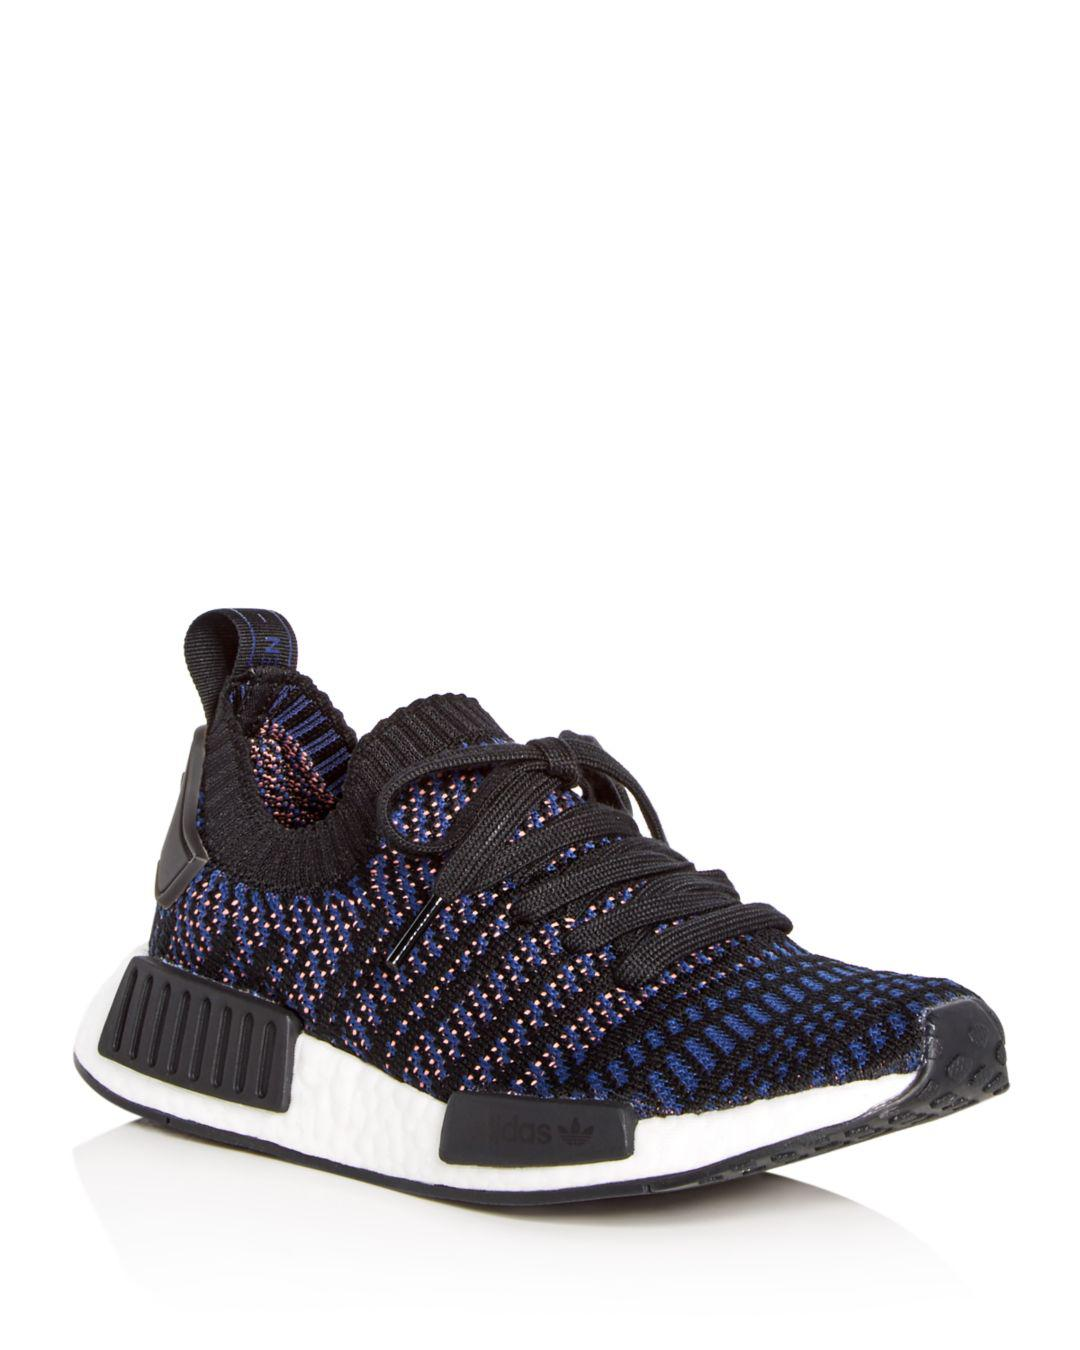 939c9a495 adidas. Black Women s Nmd R1 Stlt Primeknit Casual Sneakers From Finish Line